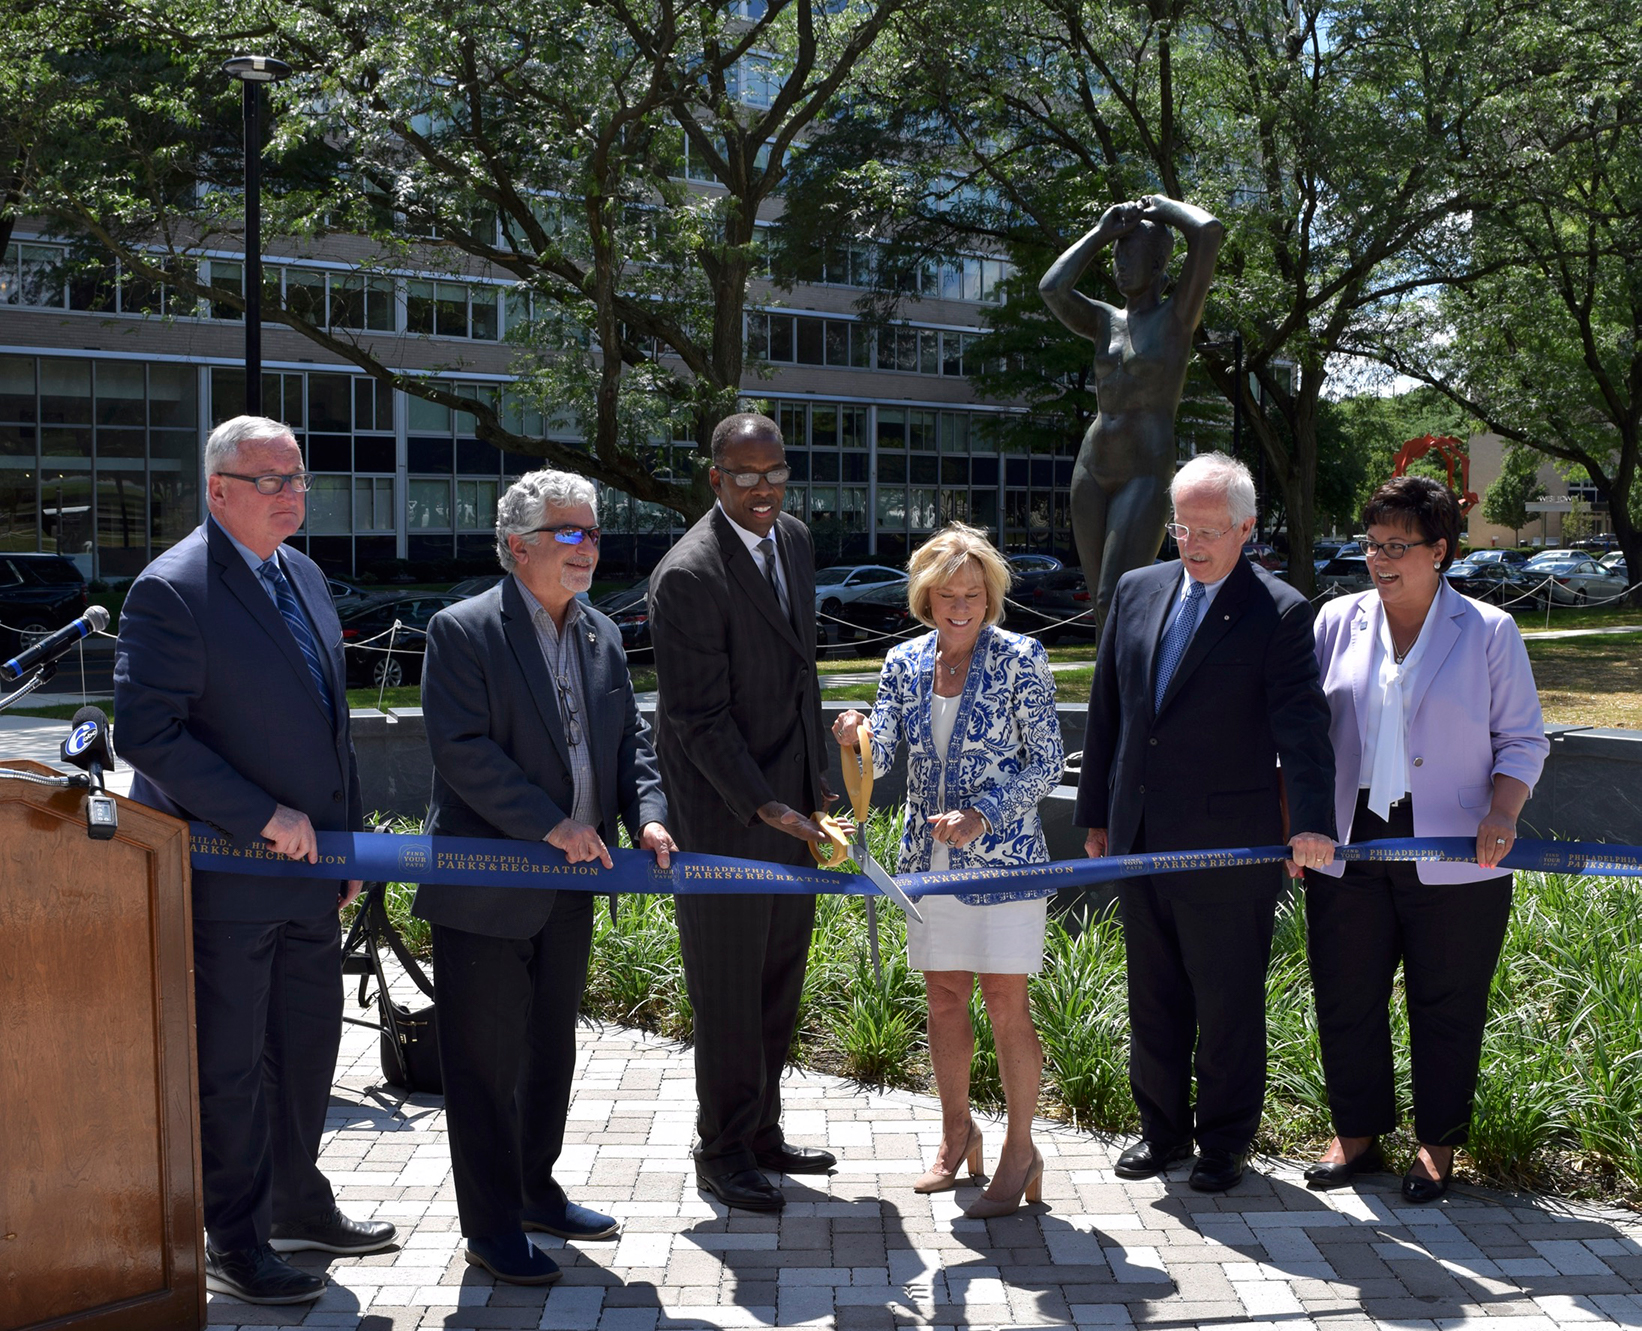 """City officials and stakeholders at the ribbon cutting for the new Maja Park on Parkway on a sunny summer day, with the bronze """"Maja"""" nude female sculpture behind them. Patti Schwayder of AIR Communities cuts the blue ribbon with oversized scissors. Pictured from left to right: Mayor Jim Kenney, Alan Greenberger, Council President Darrell Clarke, Patti Schwayder, Dennis Boylan, andCommissioner Kathryn Ott Lovell"""